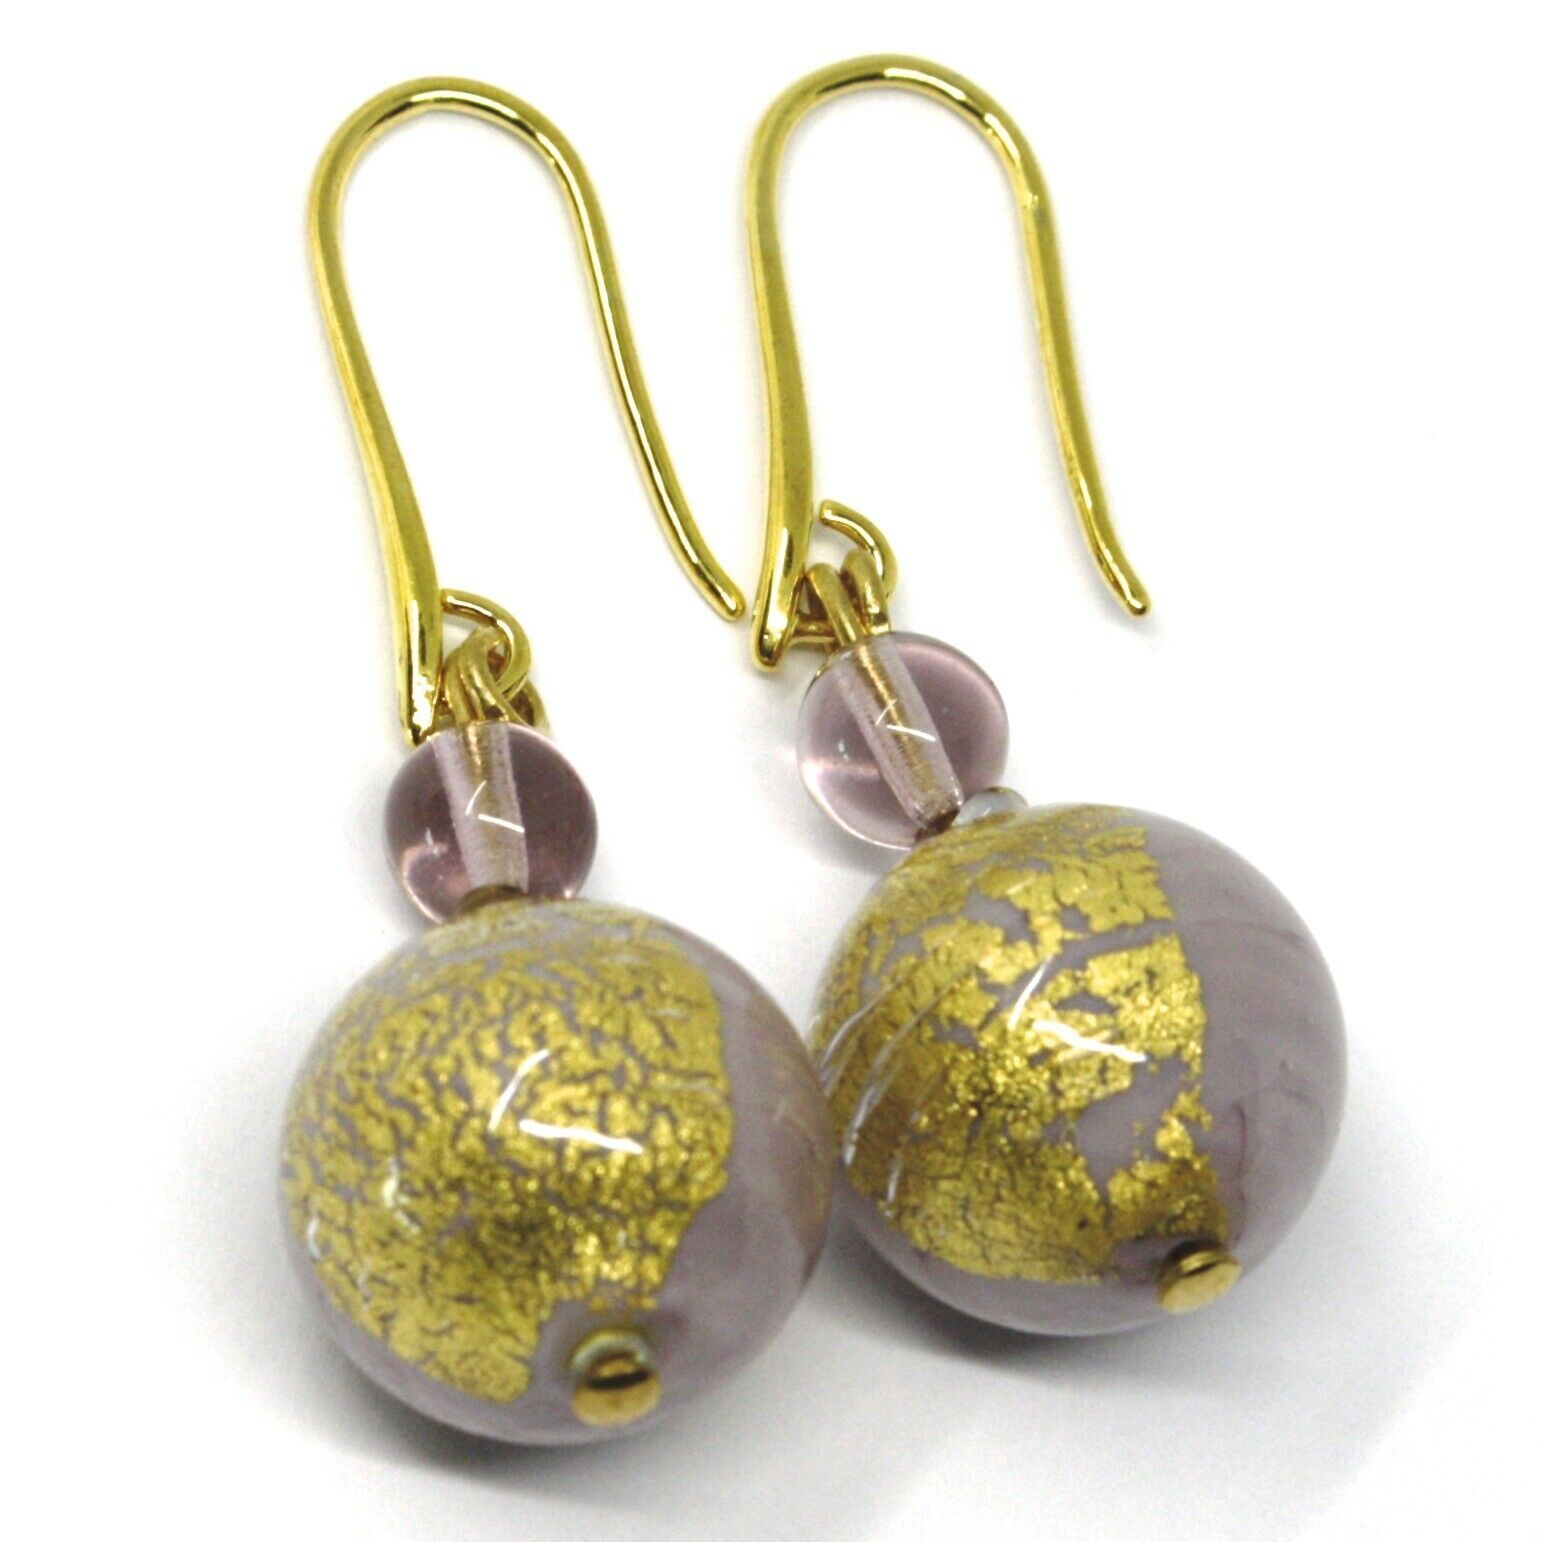 PENDANT EARRINGS PURPLE MURANO GLASS SPHERE & GOLD LEAF, 4.5cm, MADE IN ITALY